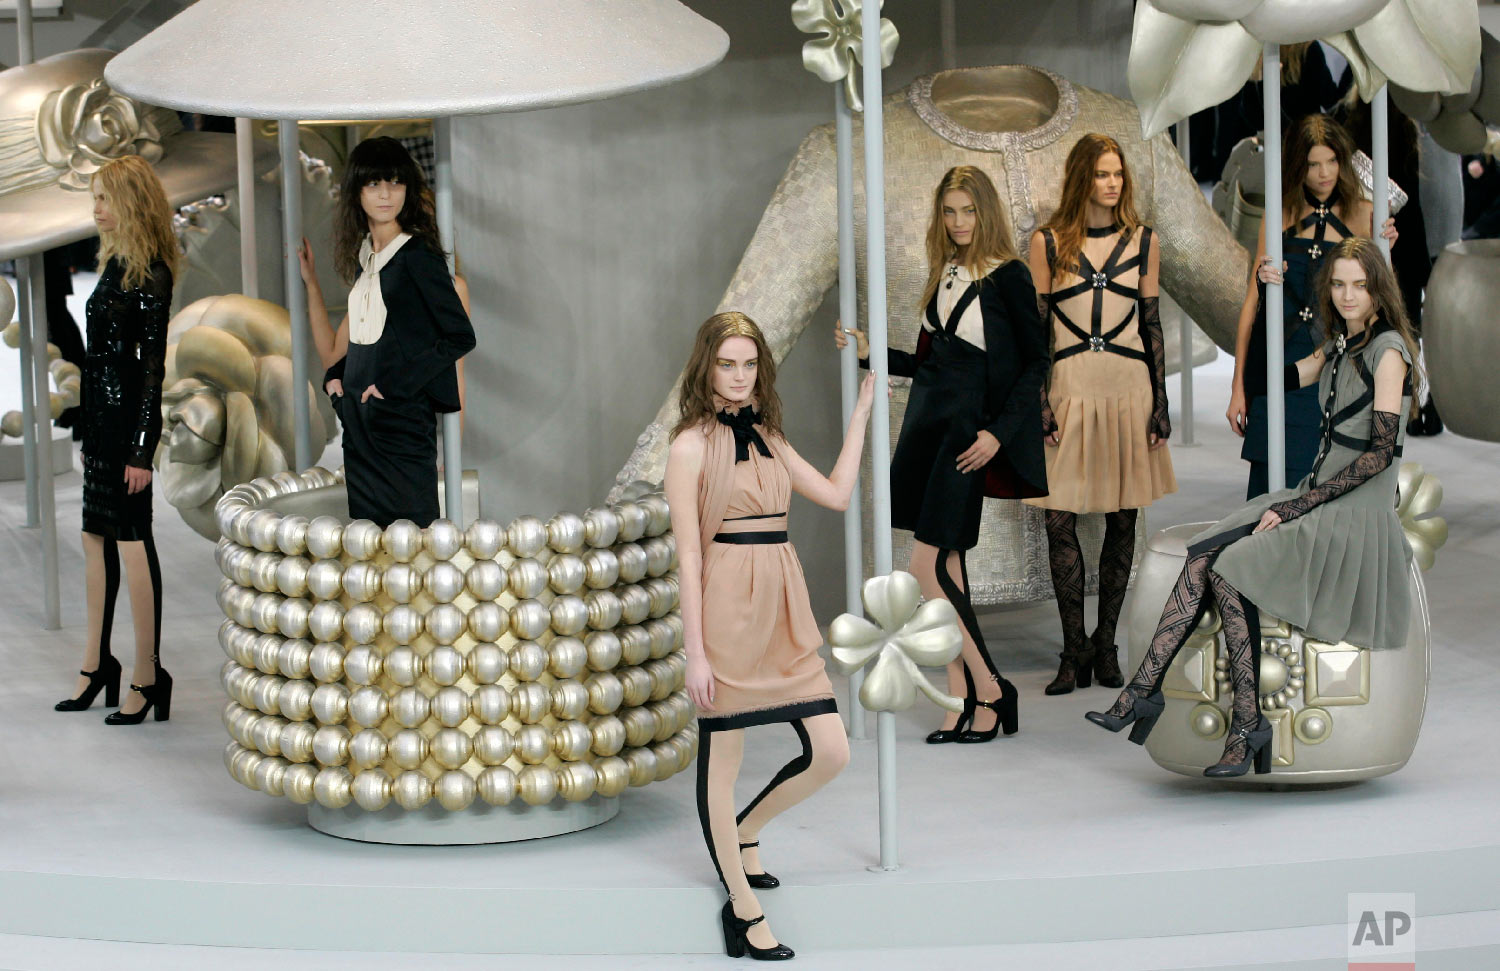 Models wear creations by German fashion designer Karl Lagerfeld for Chanel's fall-winter 2008-2009 ready to wear collection presented in Paris, Feb. 29, 2008. (AP Photo/Christophe Ena)